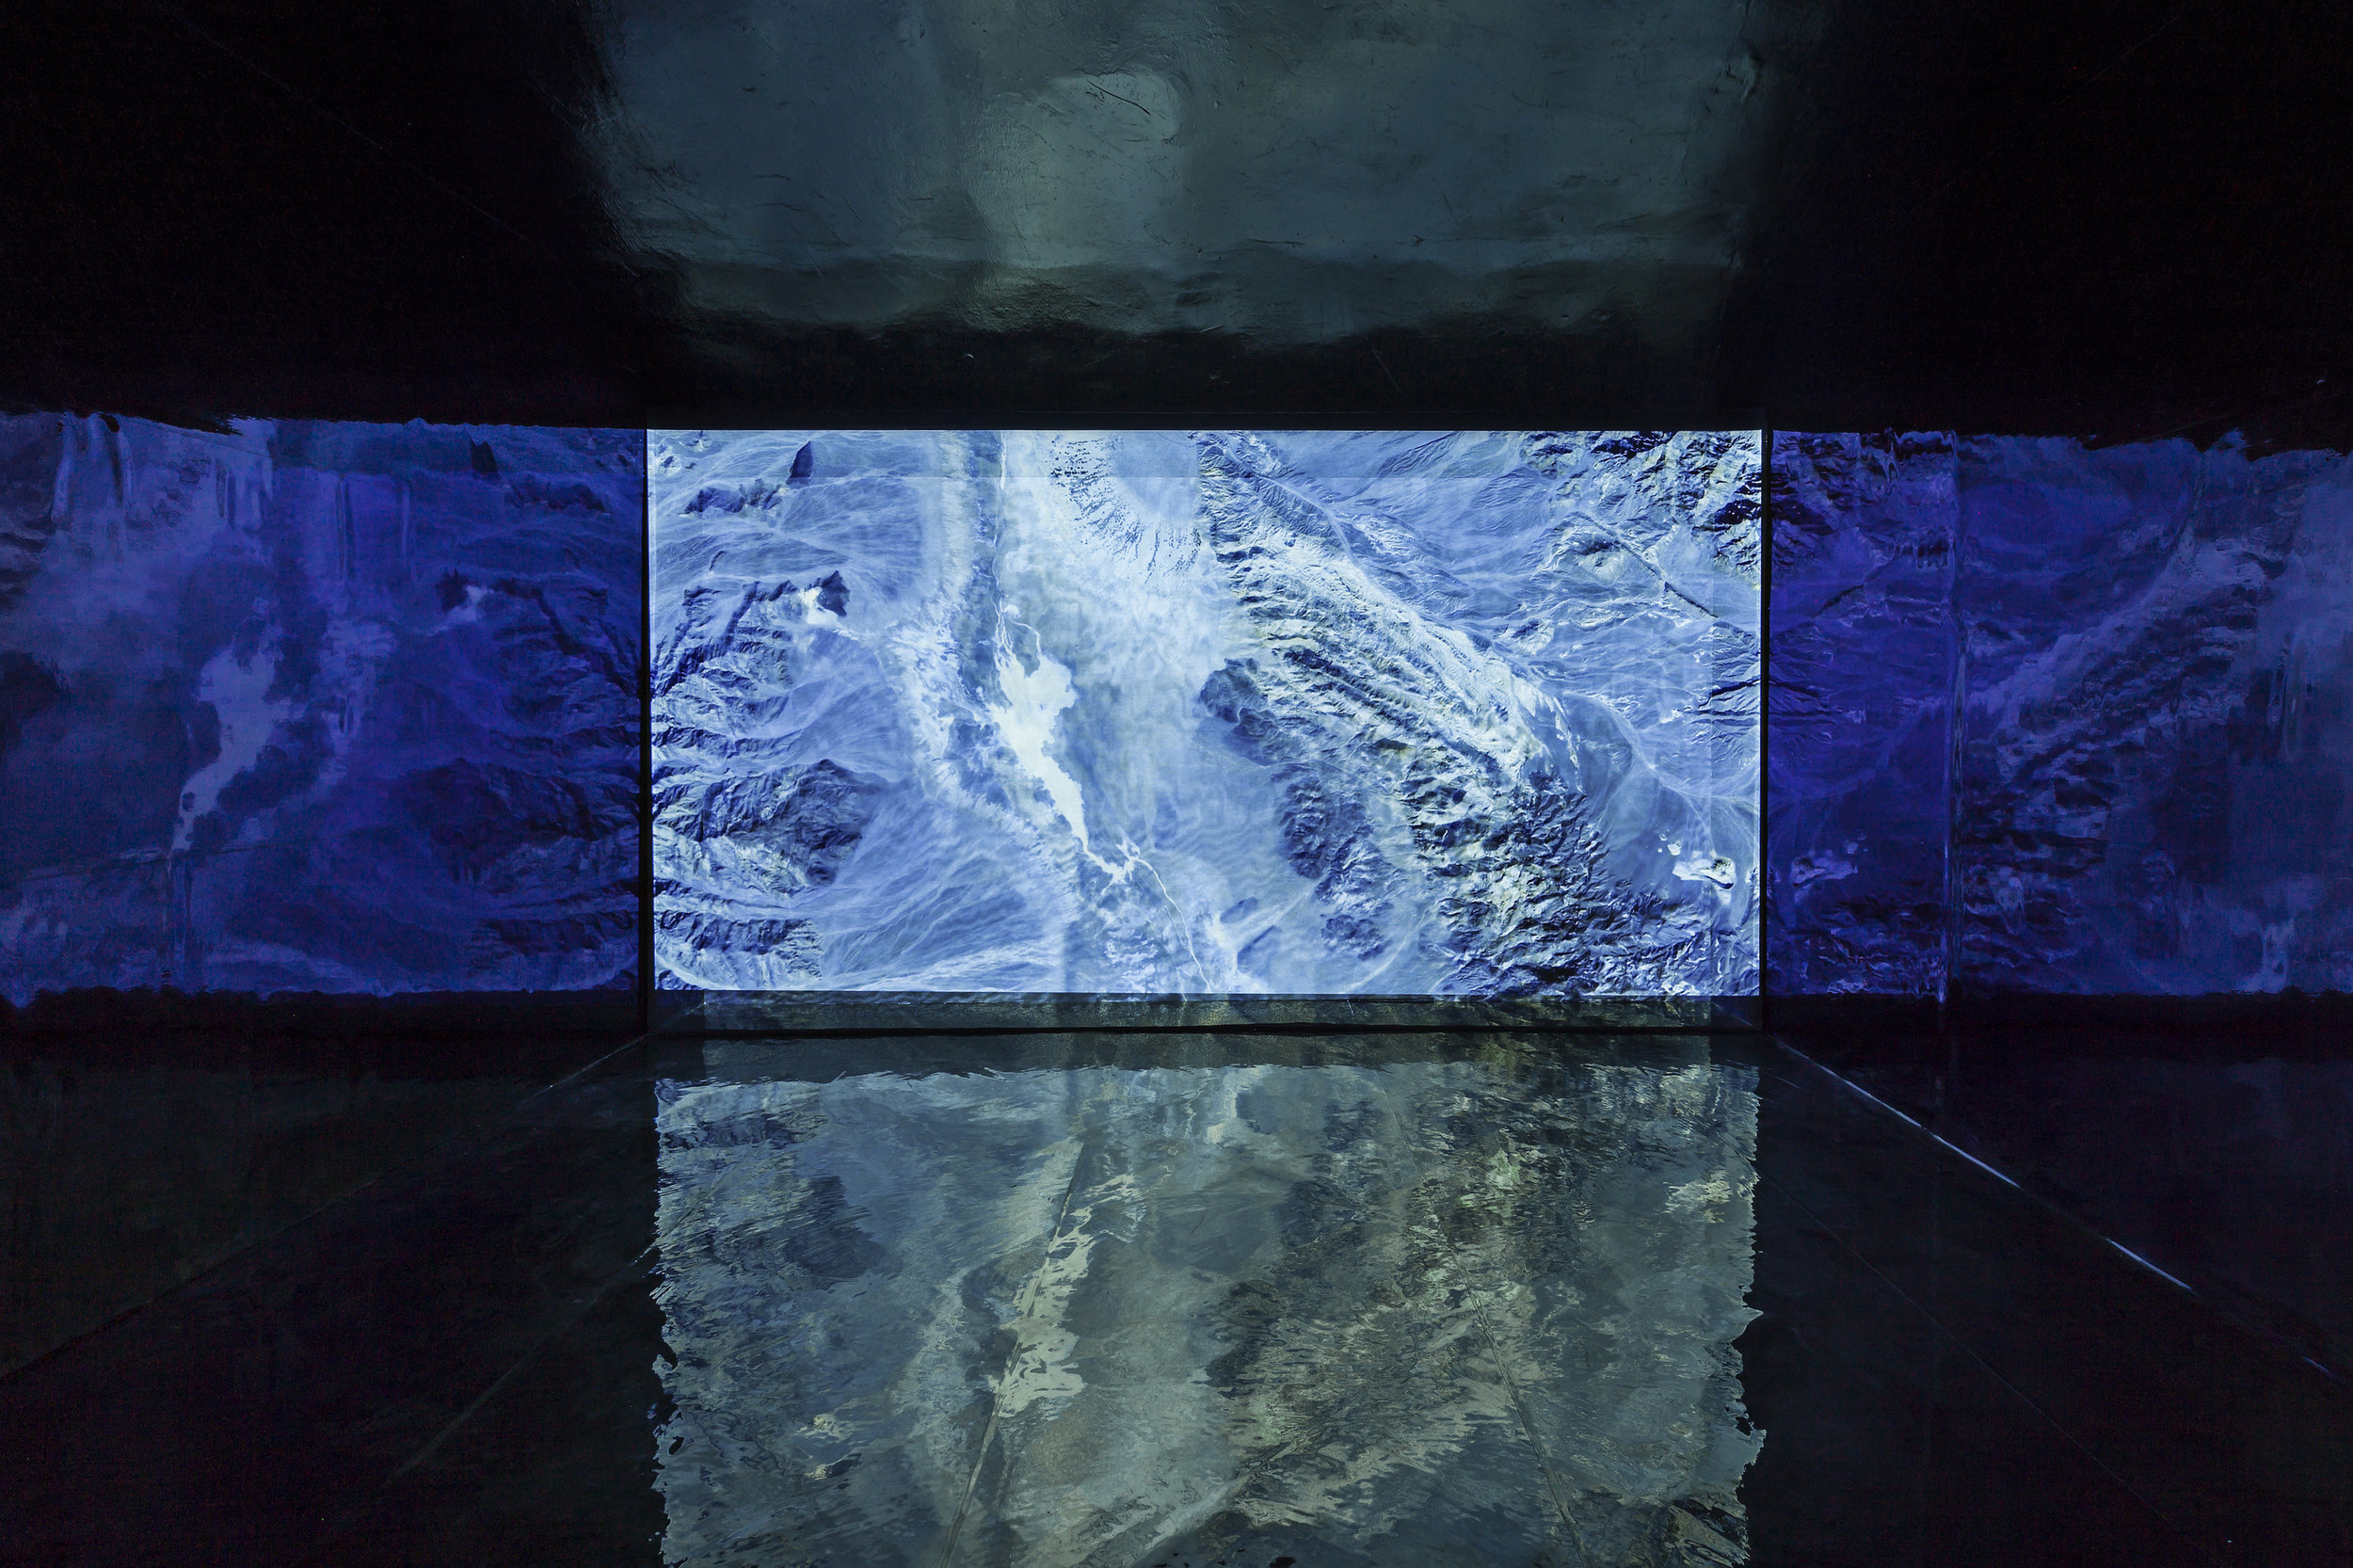 Zheng Chongbin,Chimeric Landscapes from Venice Biennale, 2015